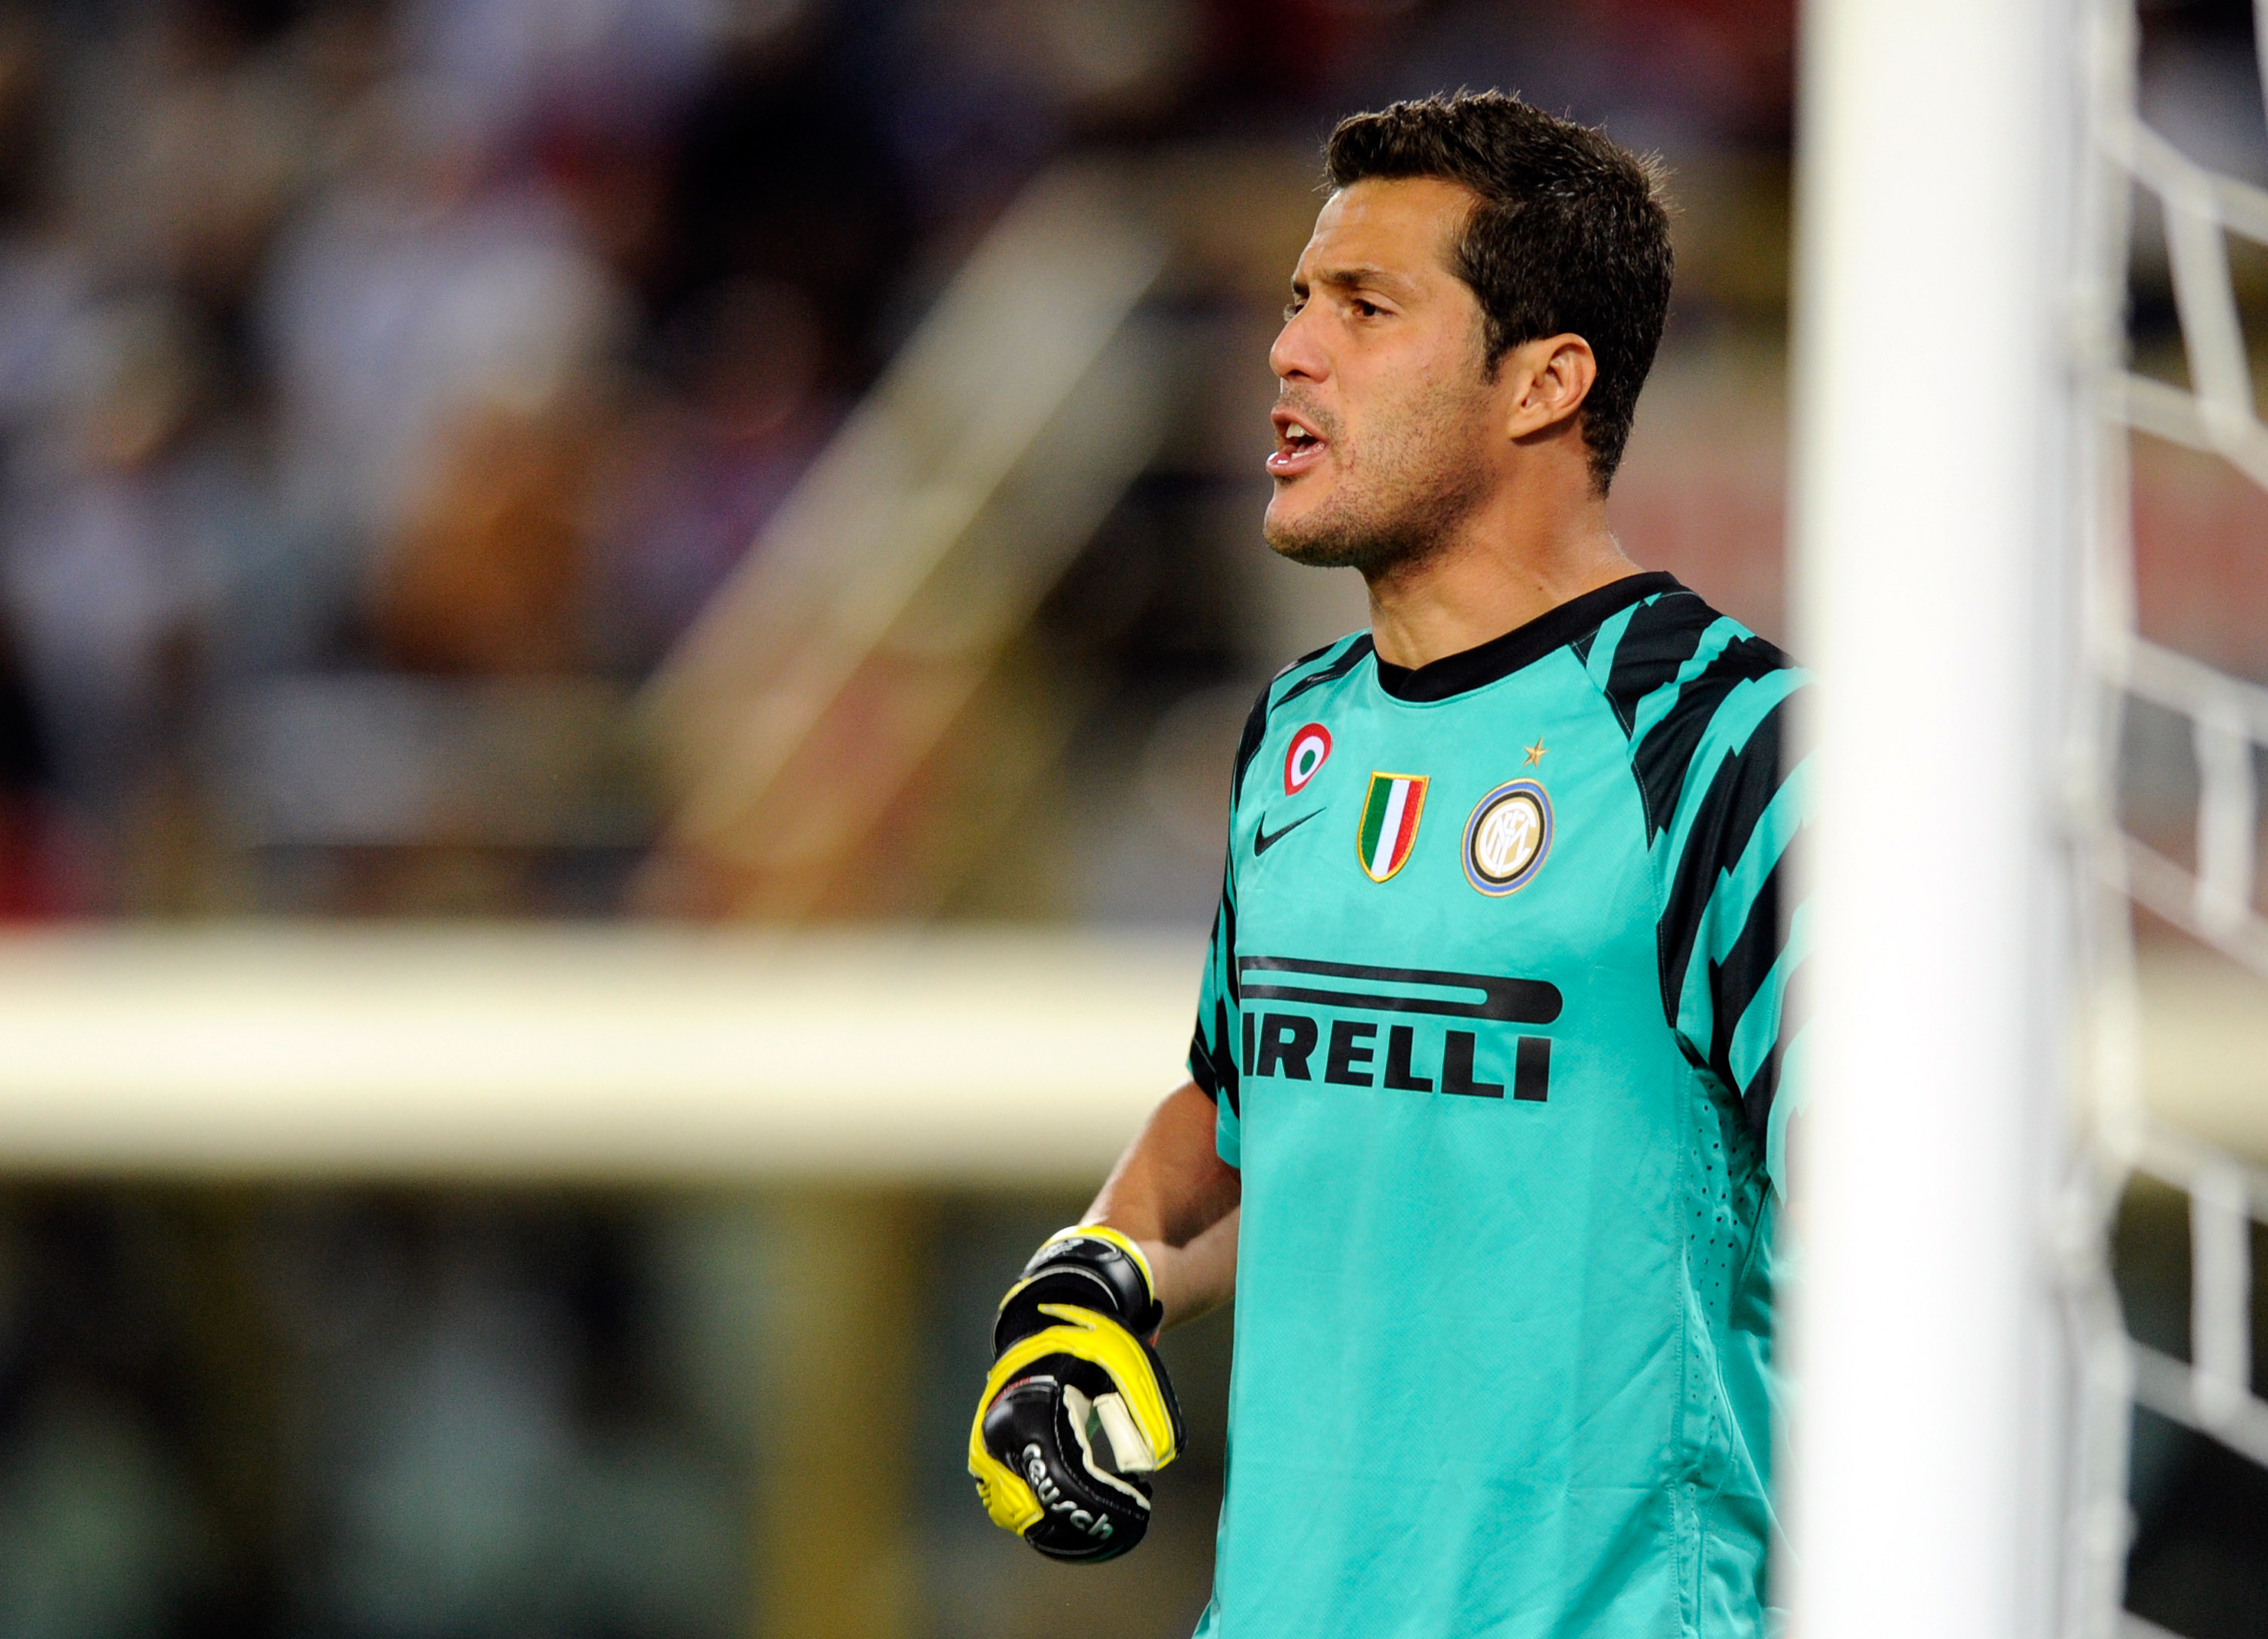 BOLOGNA, ITALY - AUGUST 30:  Julio Cesar of FC Internazionale during the Serie A match between Bologna and Inter at Stadio Renato Dall'Ara on August 30, 2010 in Bologna, Italy.  (Photo by Claudio Villa/Getty Images)